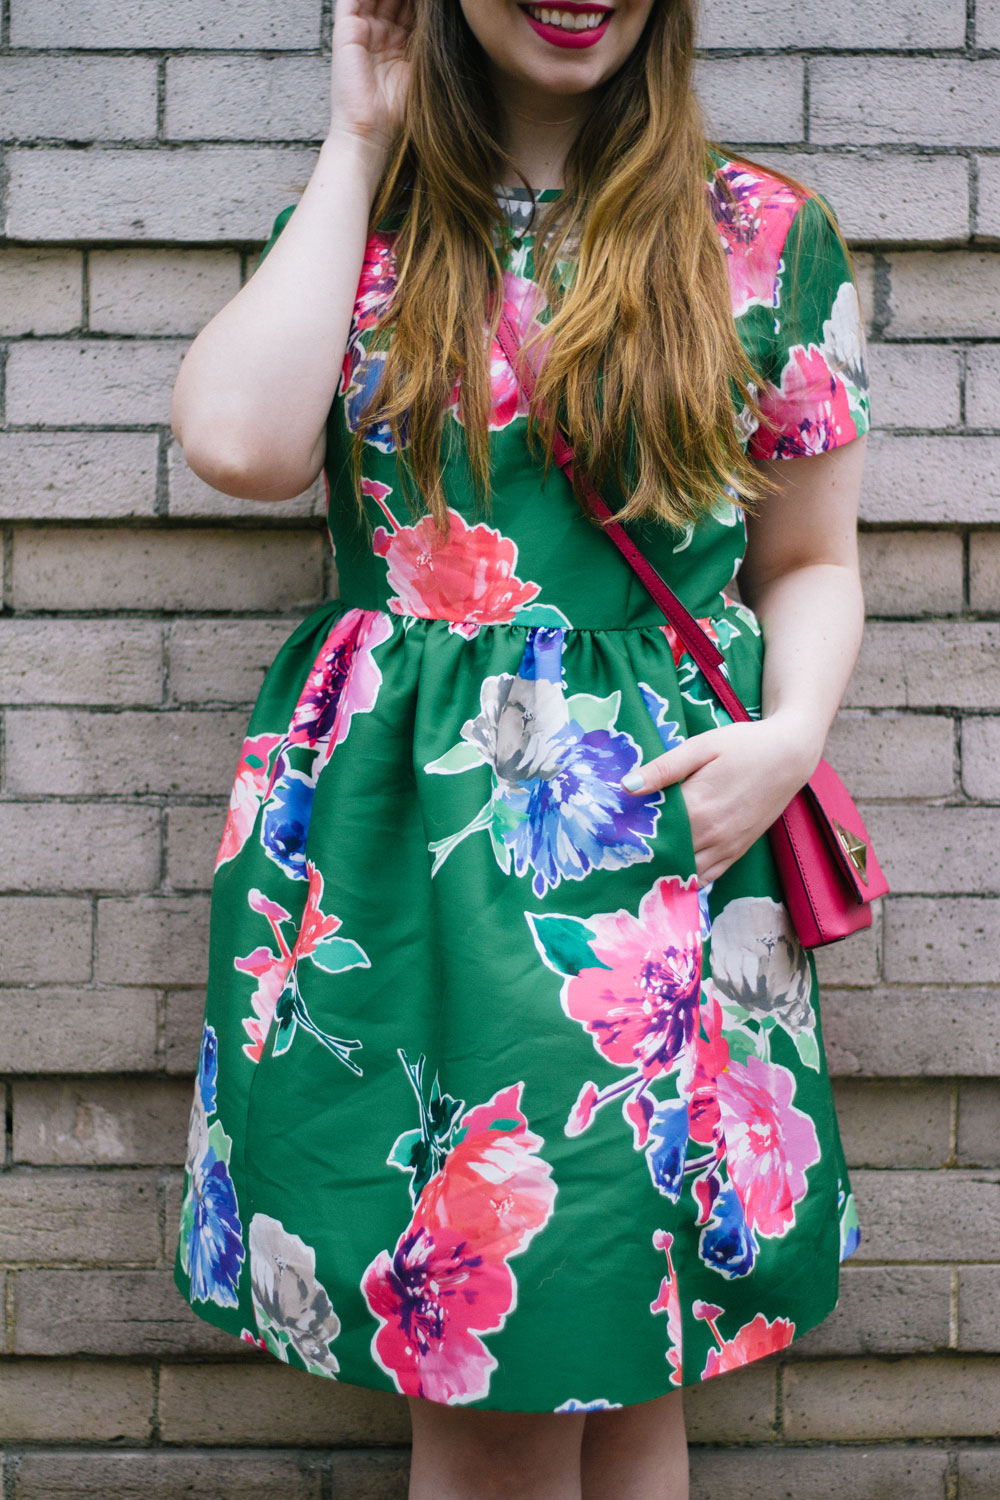 Kate Spade Stelli Dress // Outlet Mall Shopping Deals // Hello Rigby Seattle Fashion & Style Blog